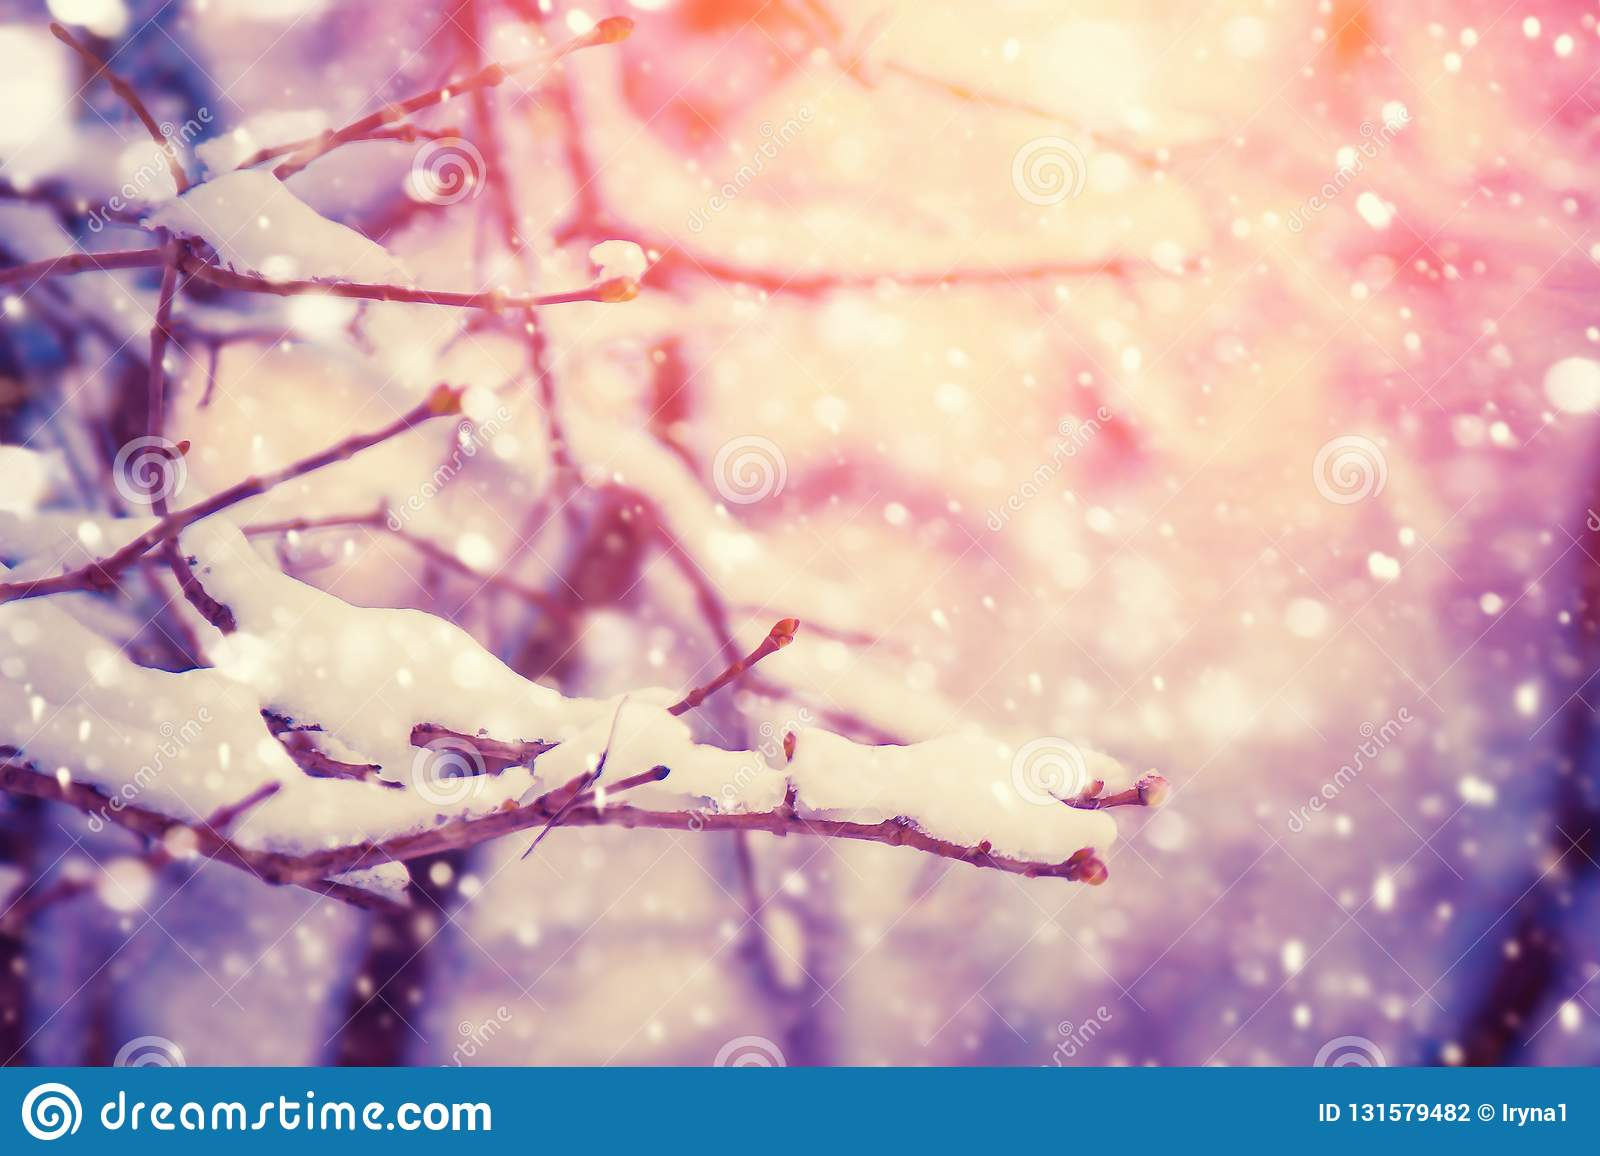 Tree branch covered with snow. Winter nature background with sunshine